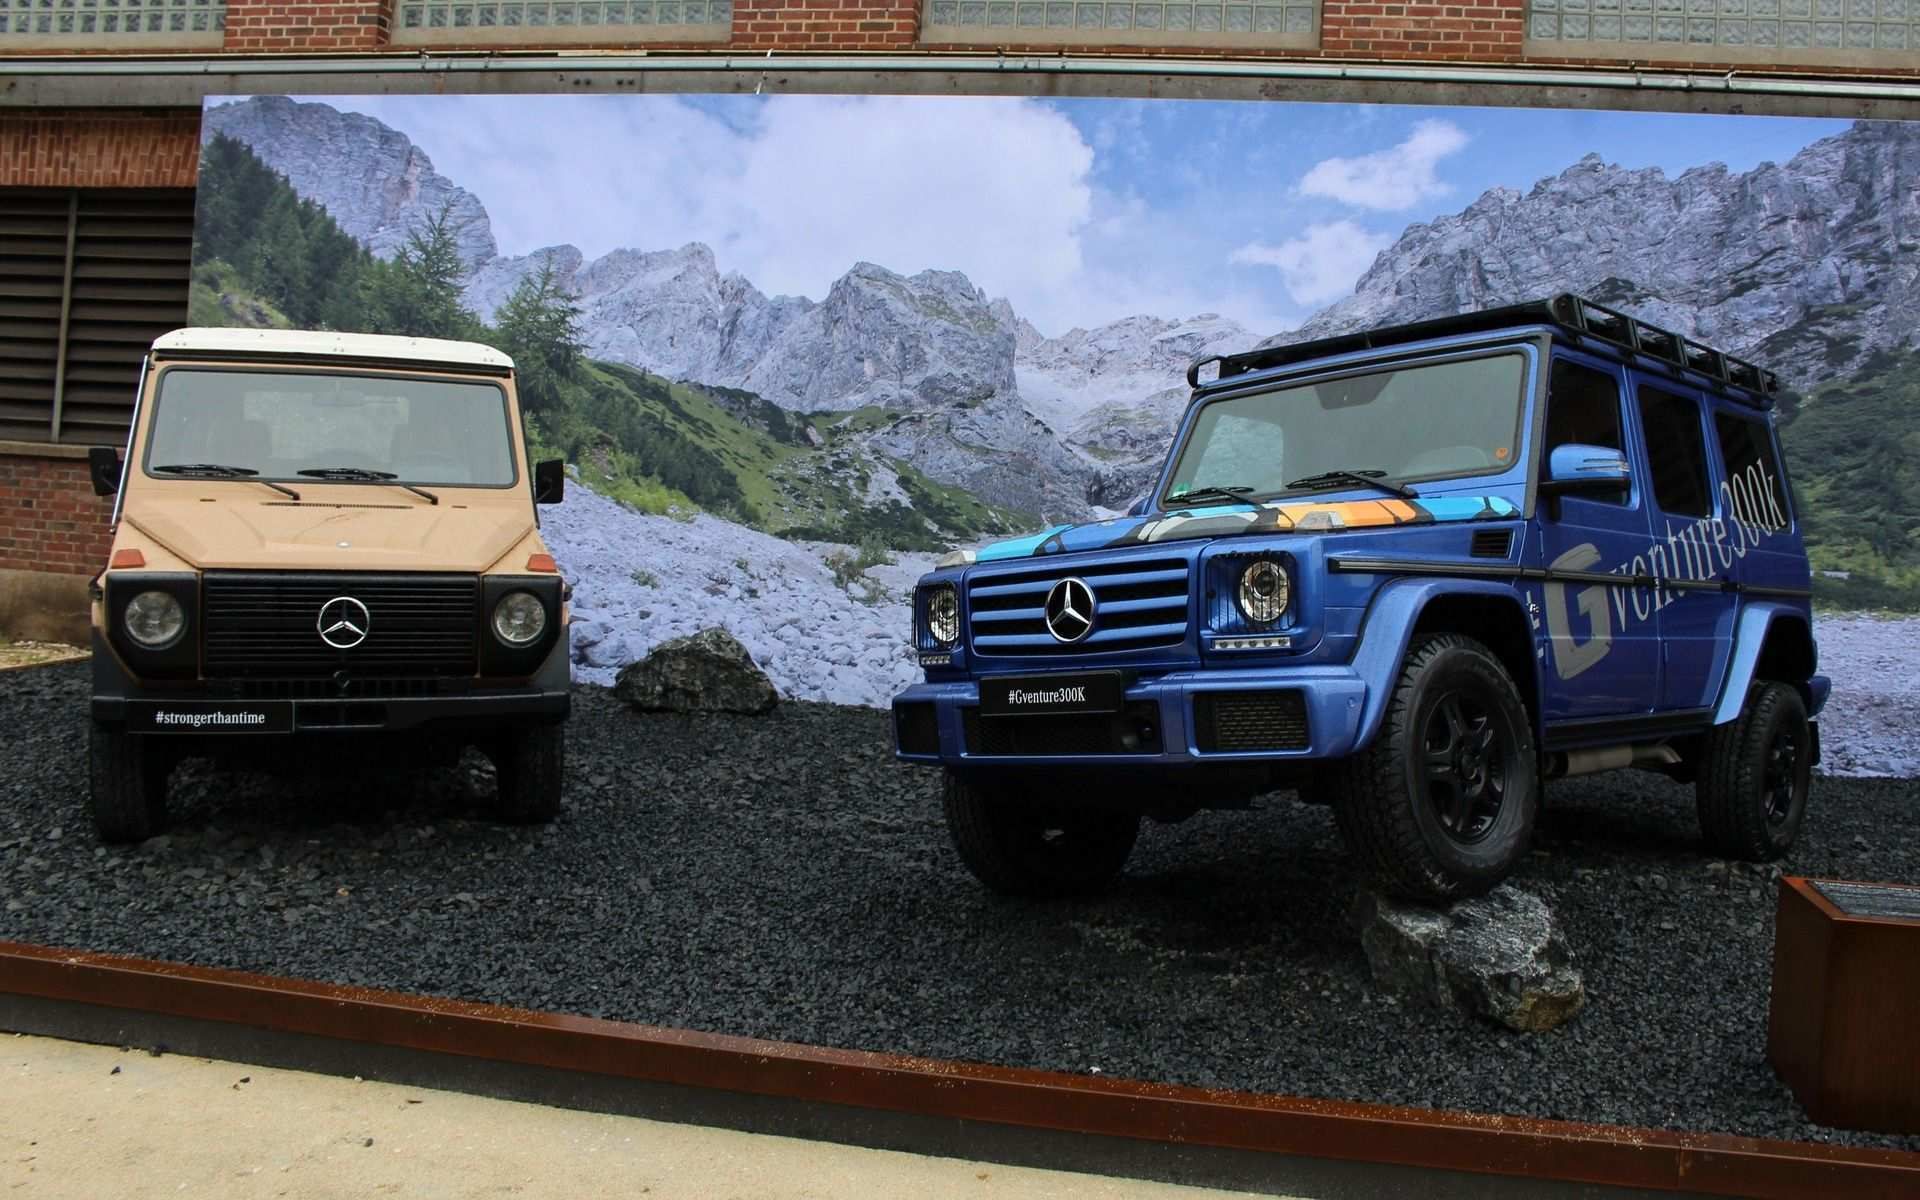 38 Best Review Mercedes G 2020 Exterior Price and Review with Mercedes G 2020 Exterior